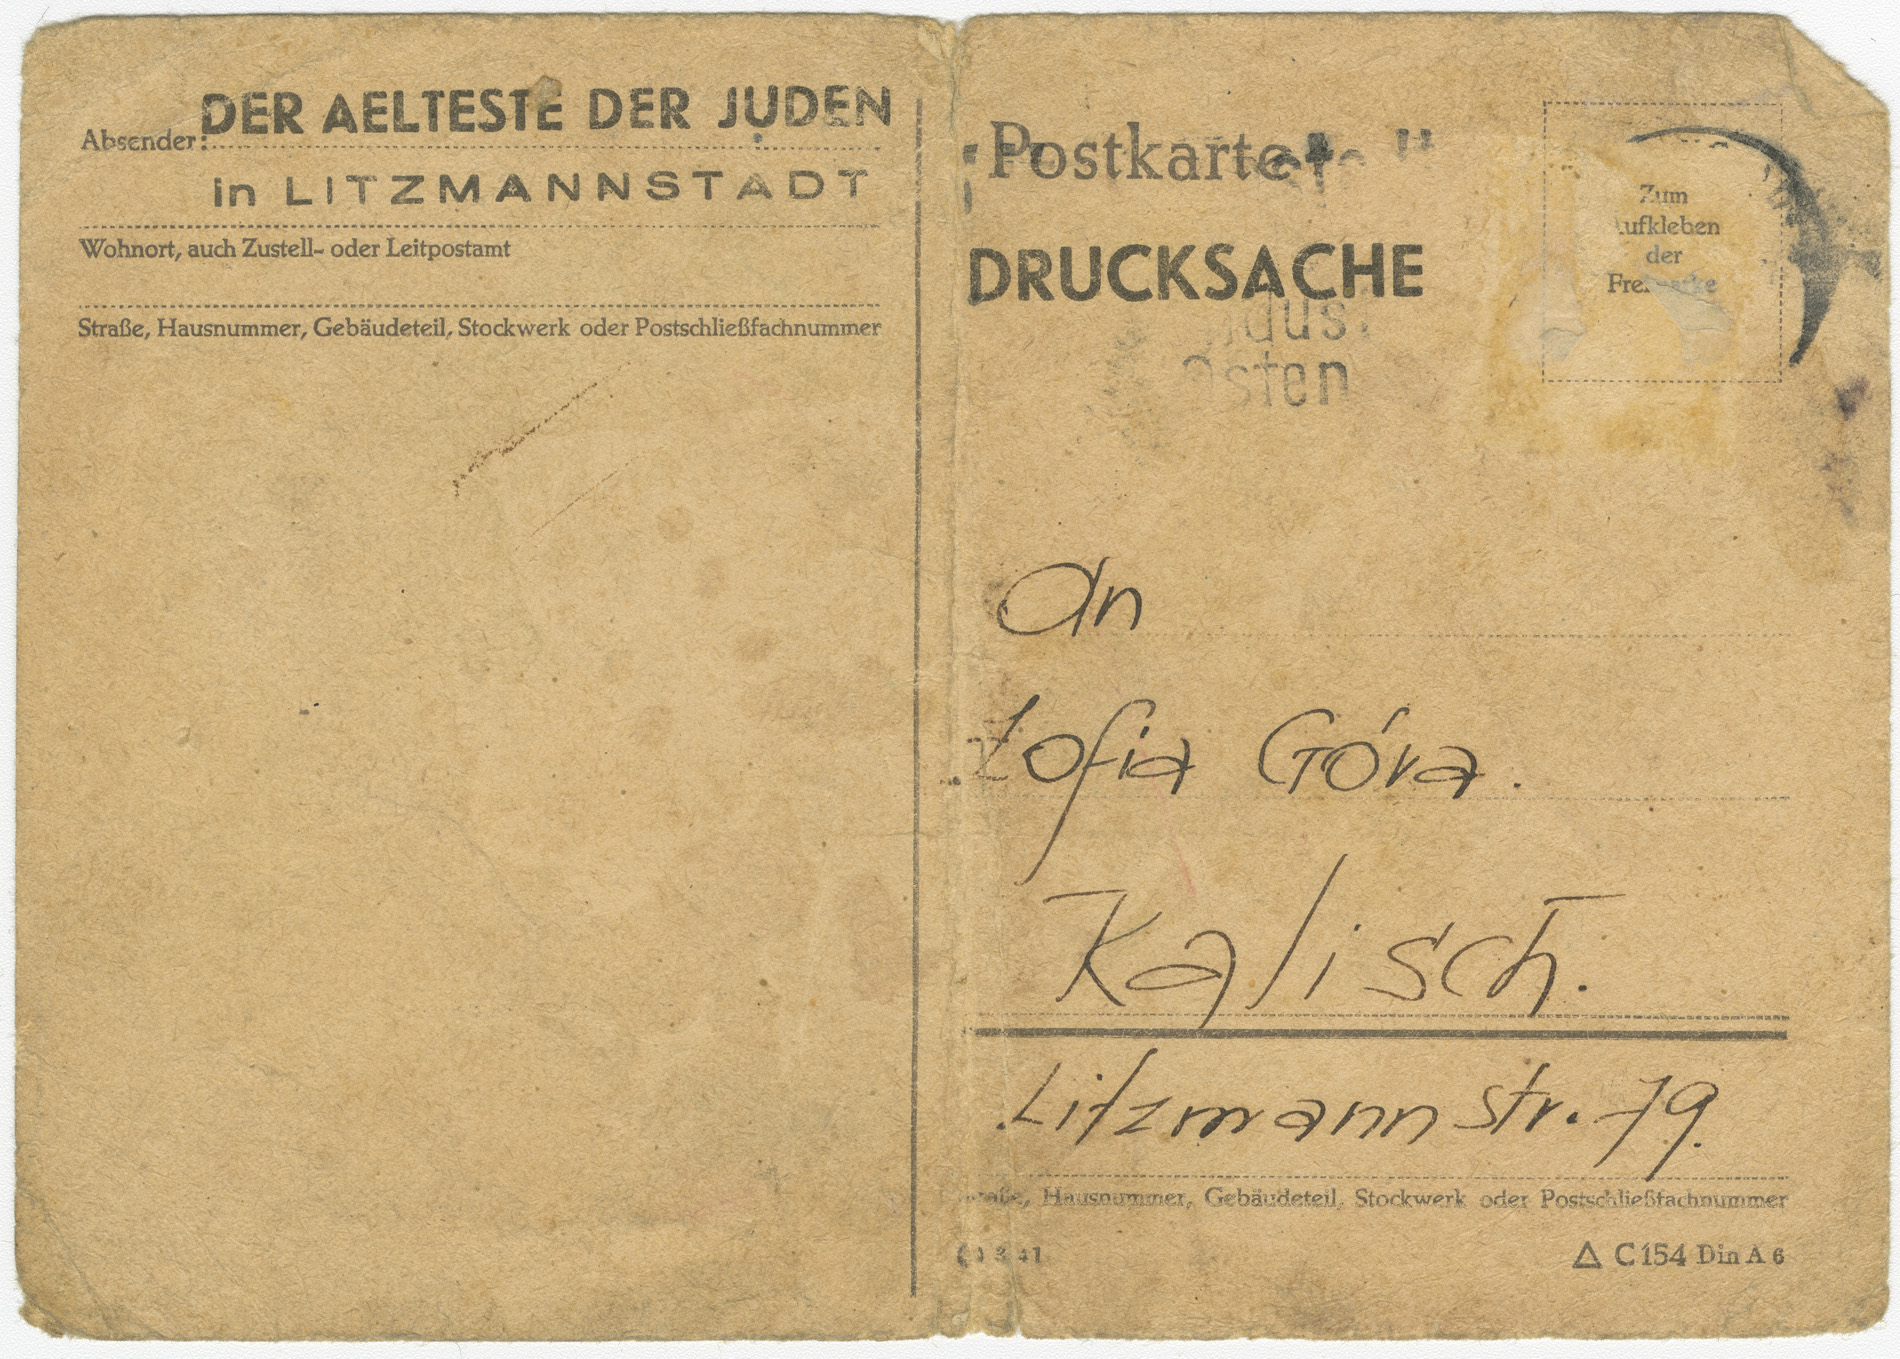 To reassure the relatives of ghetto inhabitants, the Ältestenrat sent these cards to inform them that their family members were well.